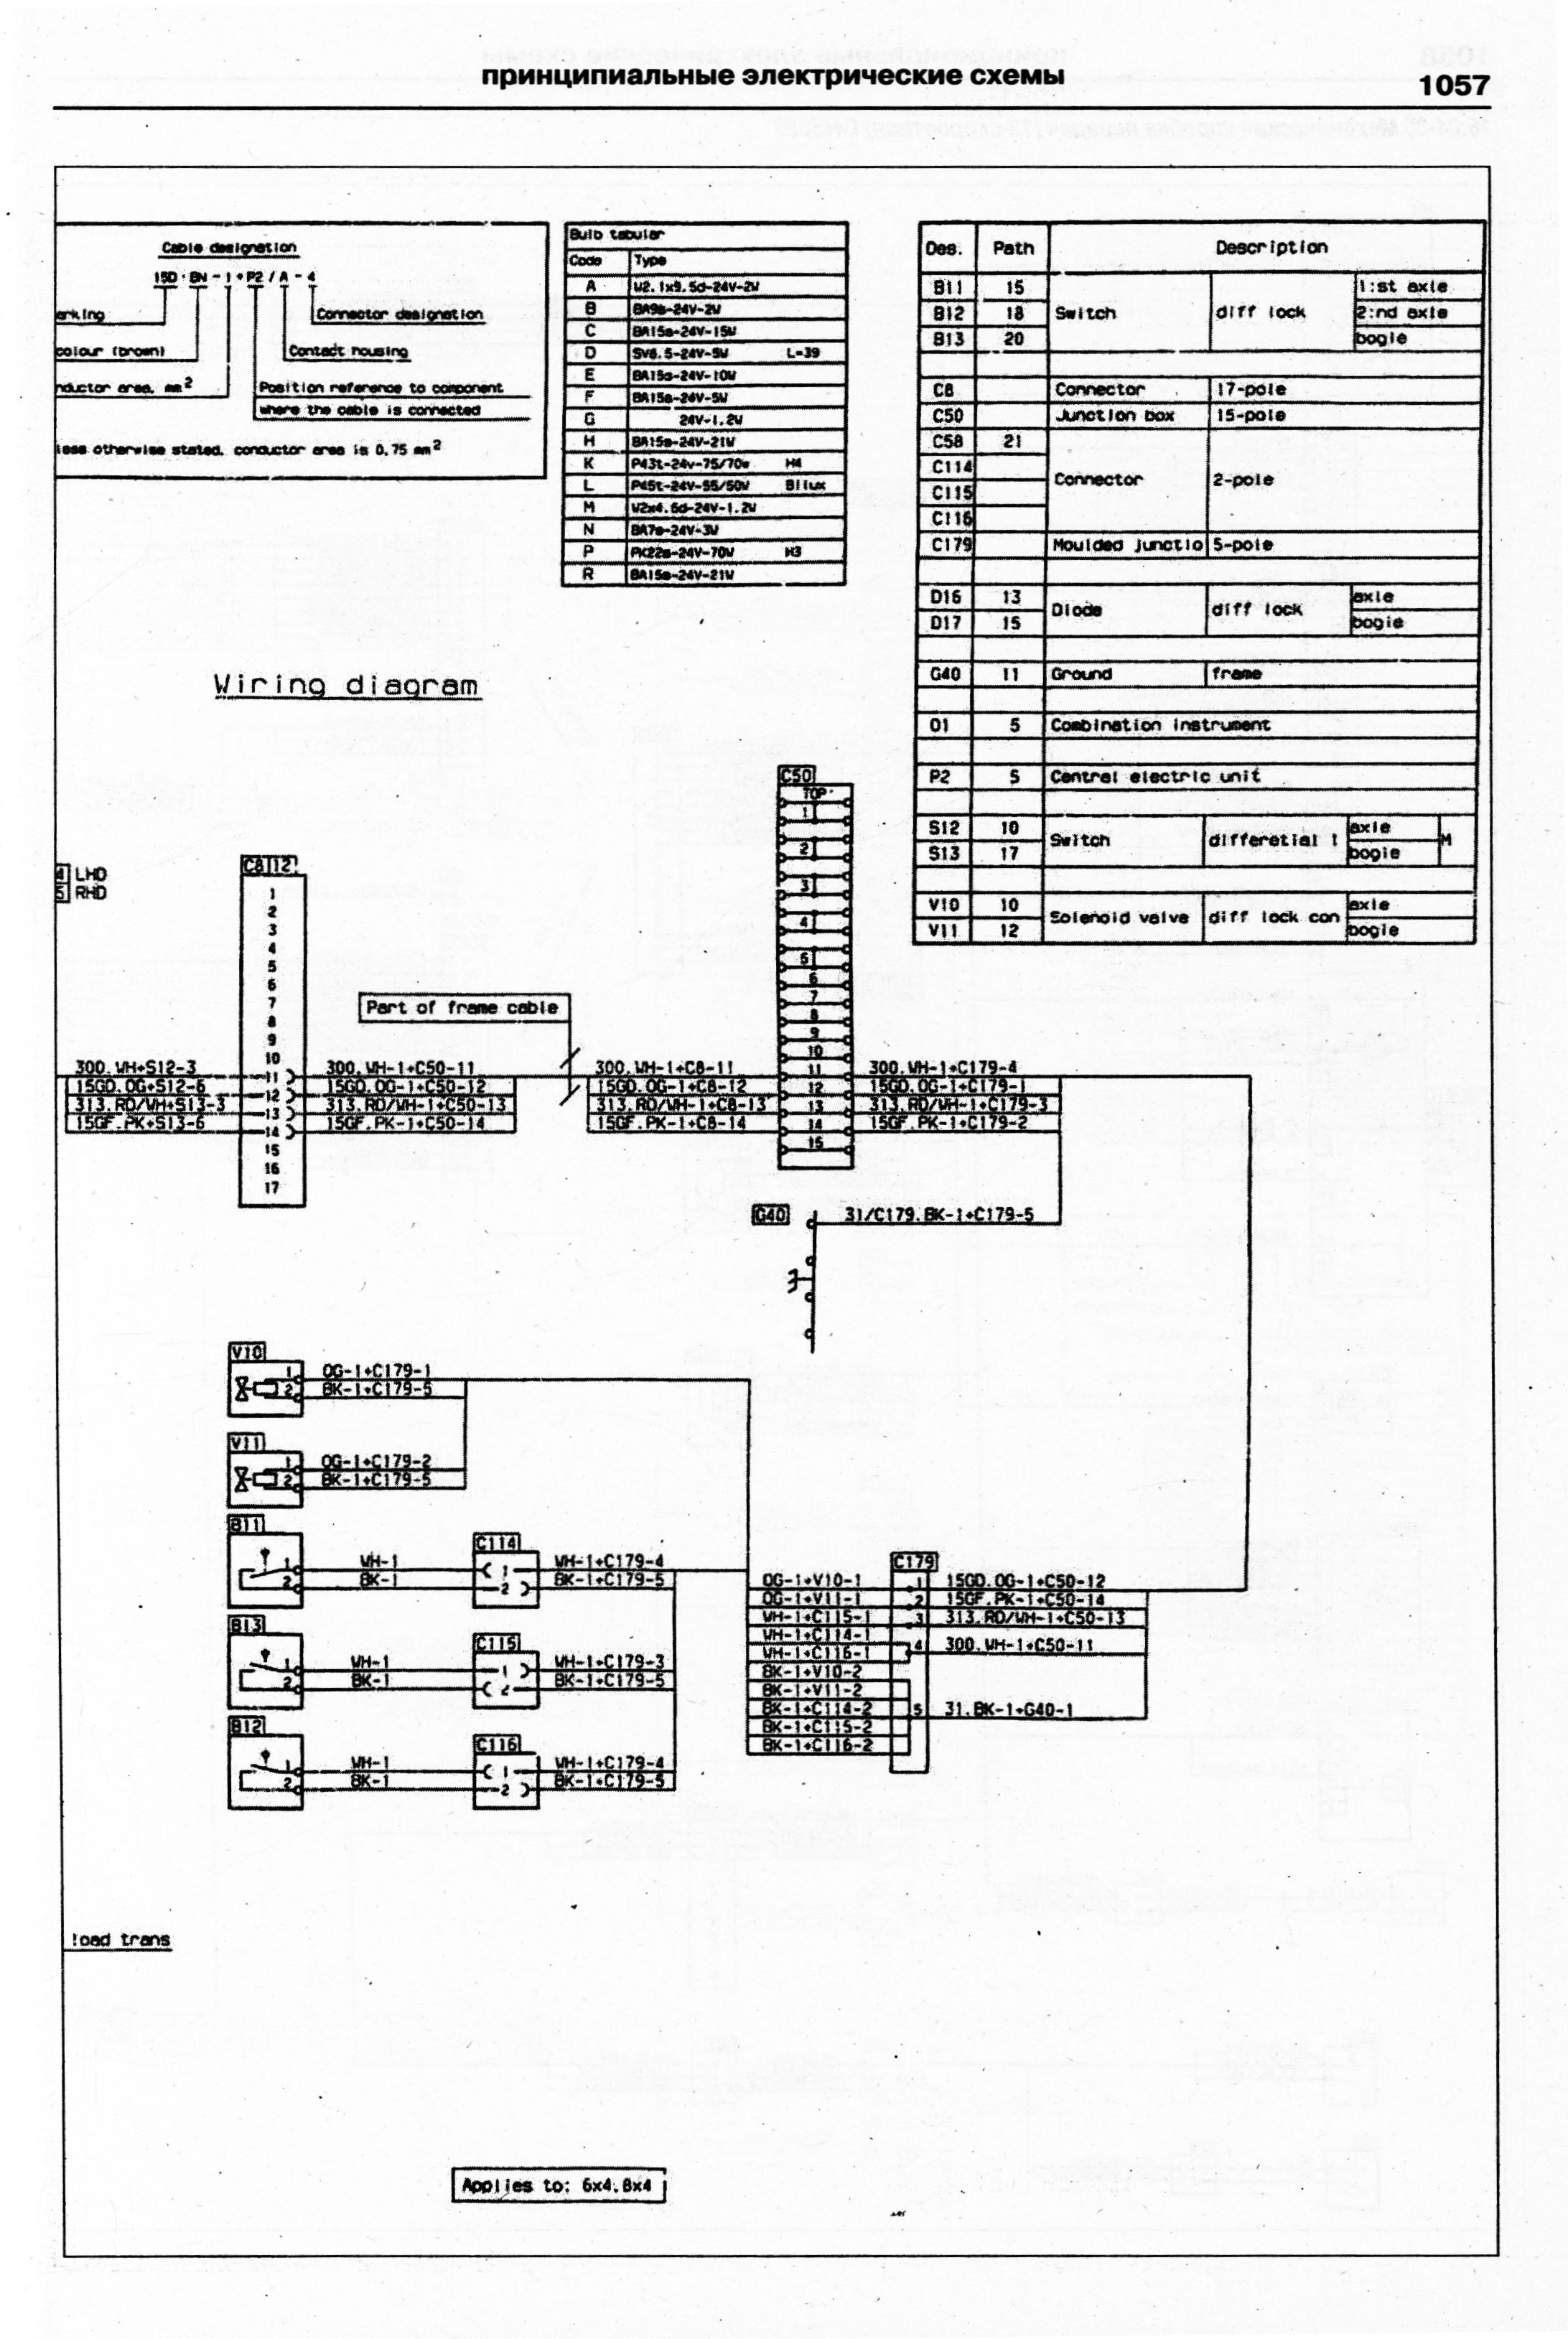 Tremendous Scania 124 Wiring Diagram Hvac Diagrams Electrical Diagrams Wiring Cloud Staixuggs Outletorg